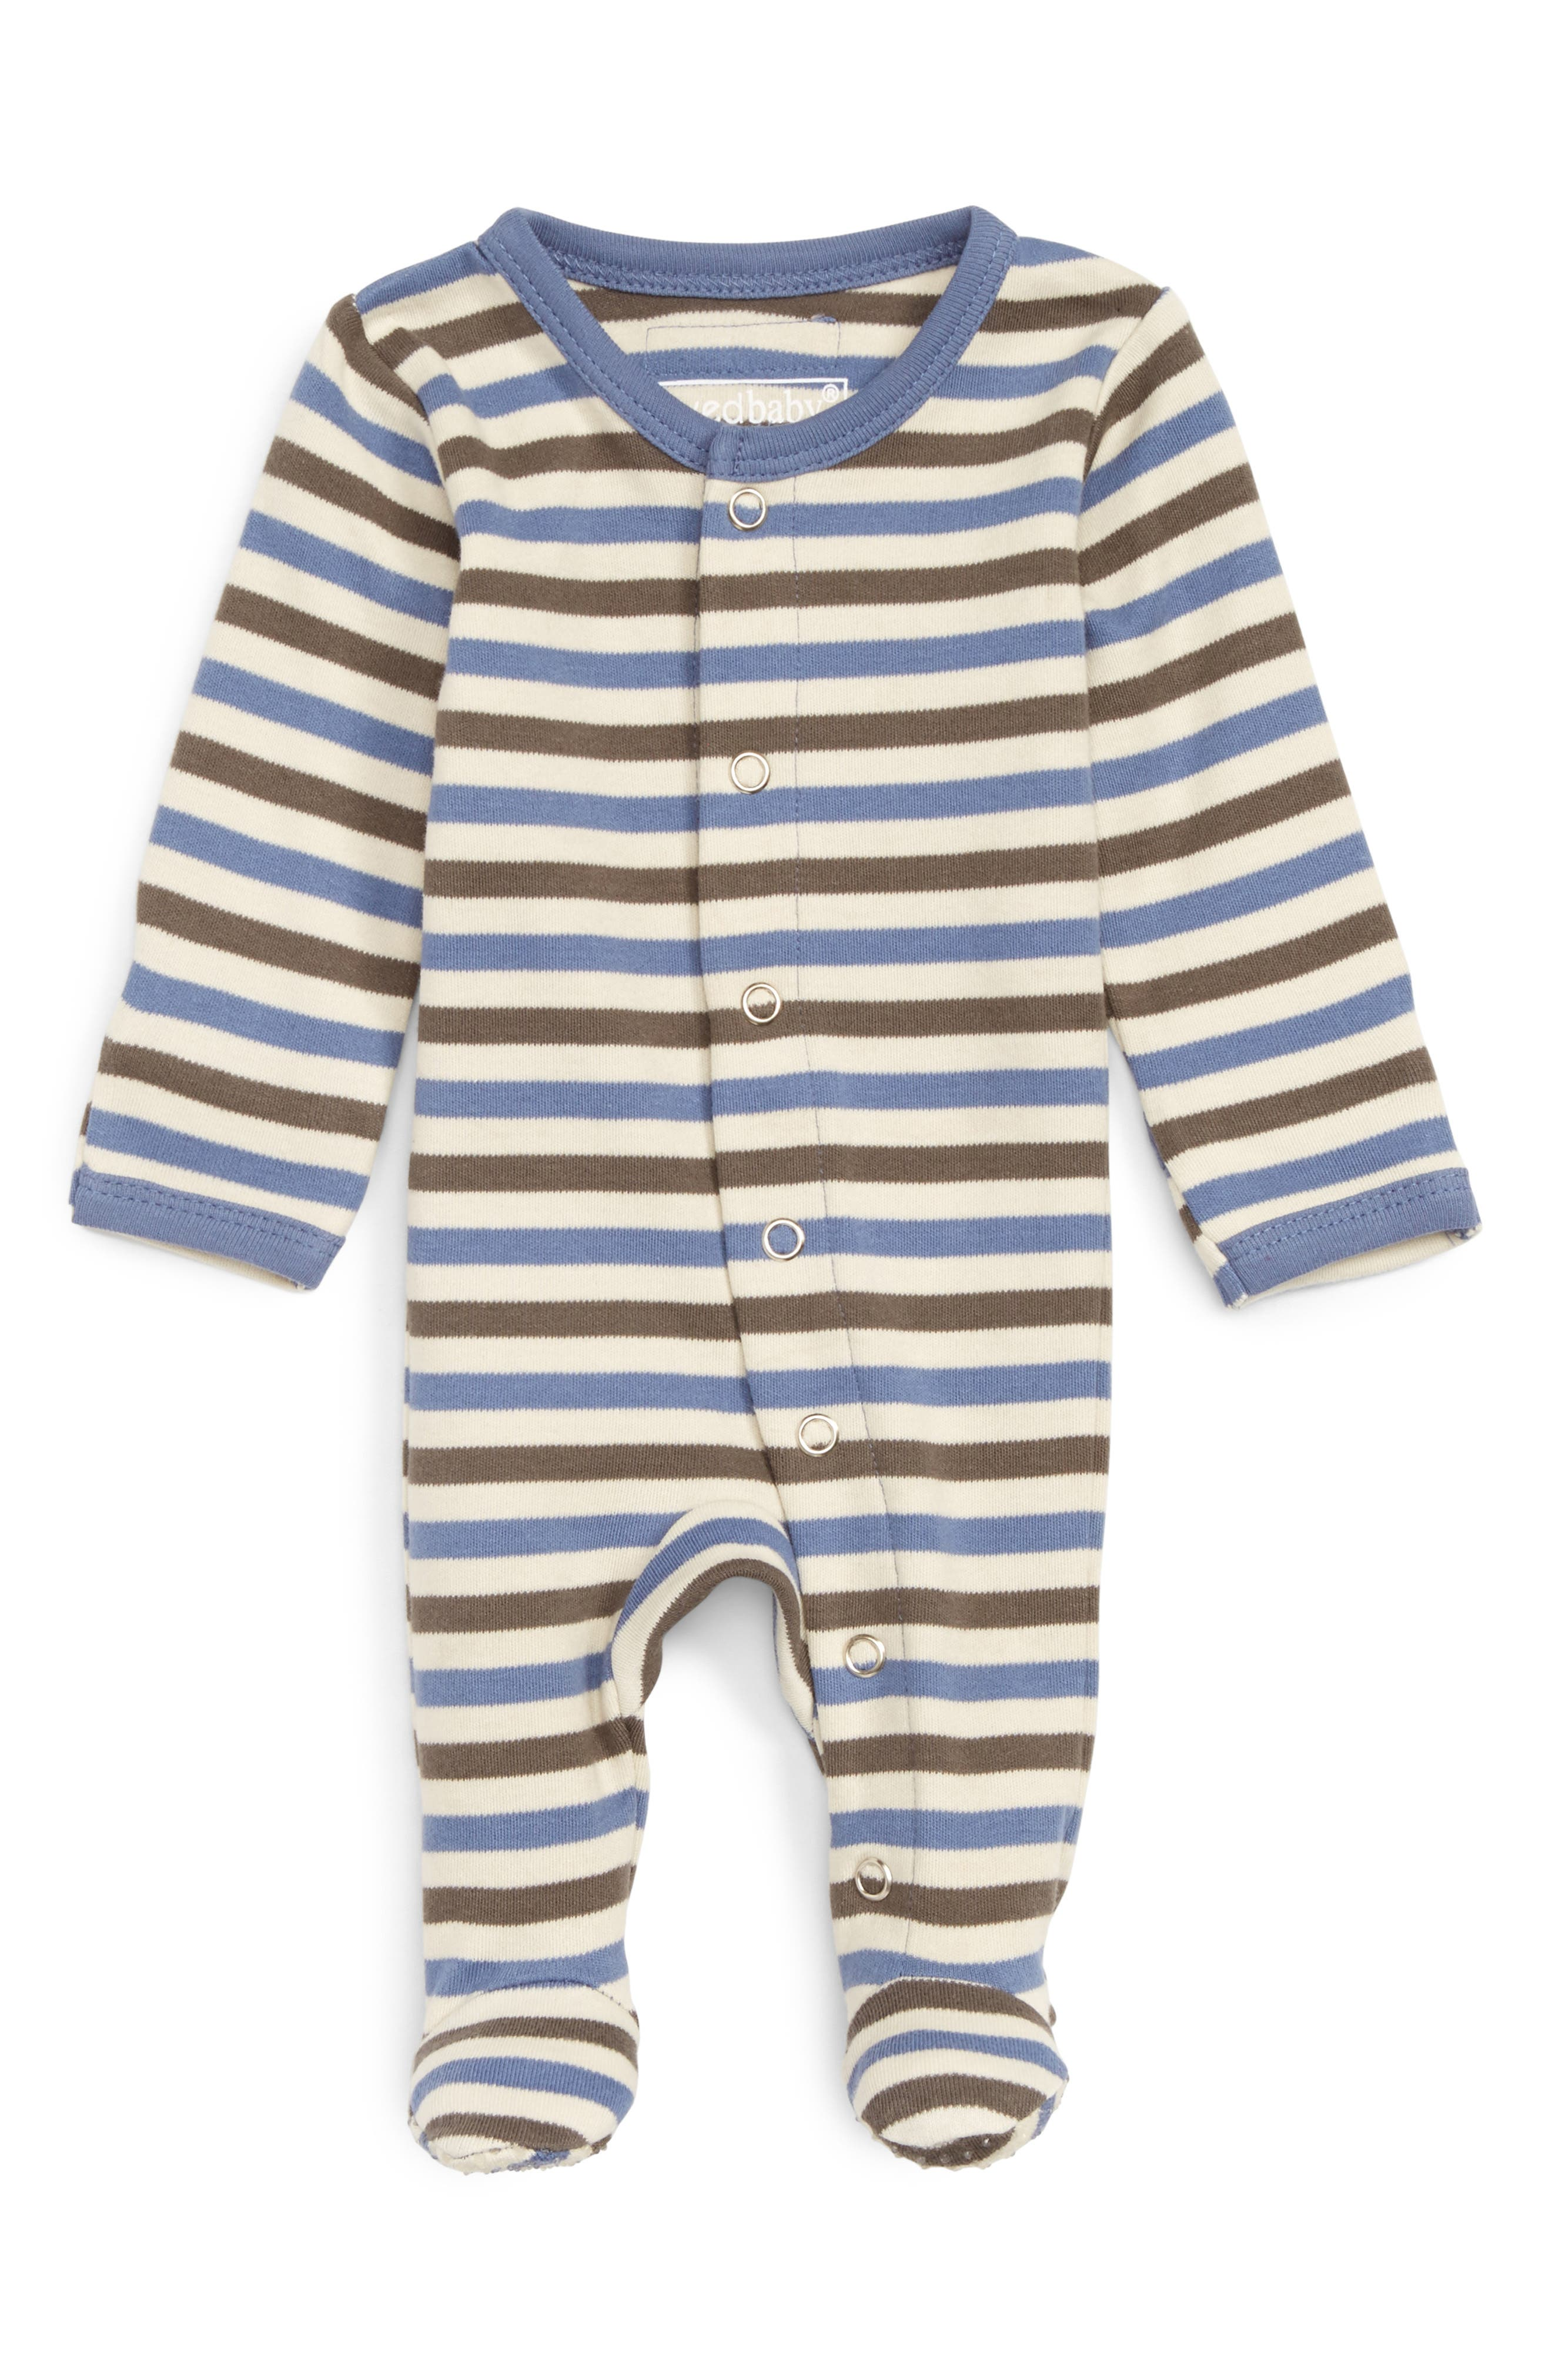 Alternate Image 1 Selected - L'ovedbaby Organic Cotton Footie (Baby)